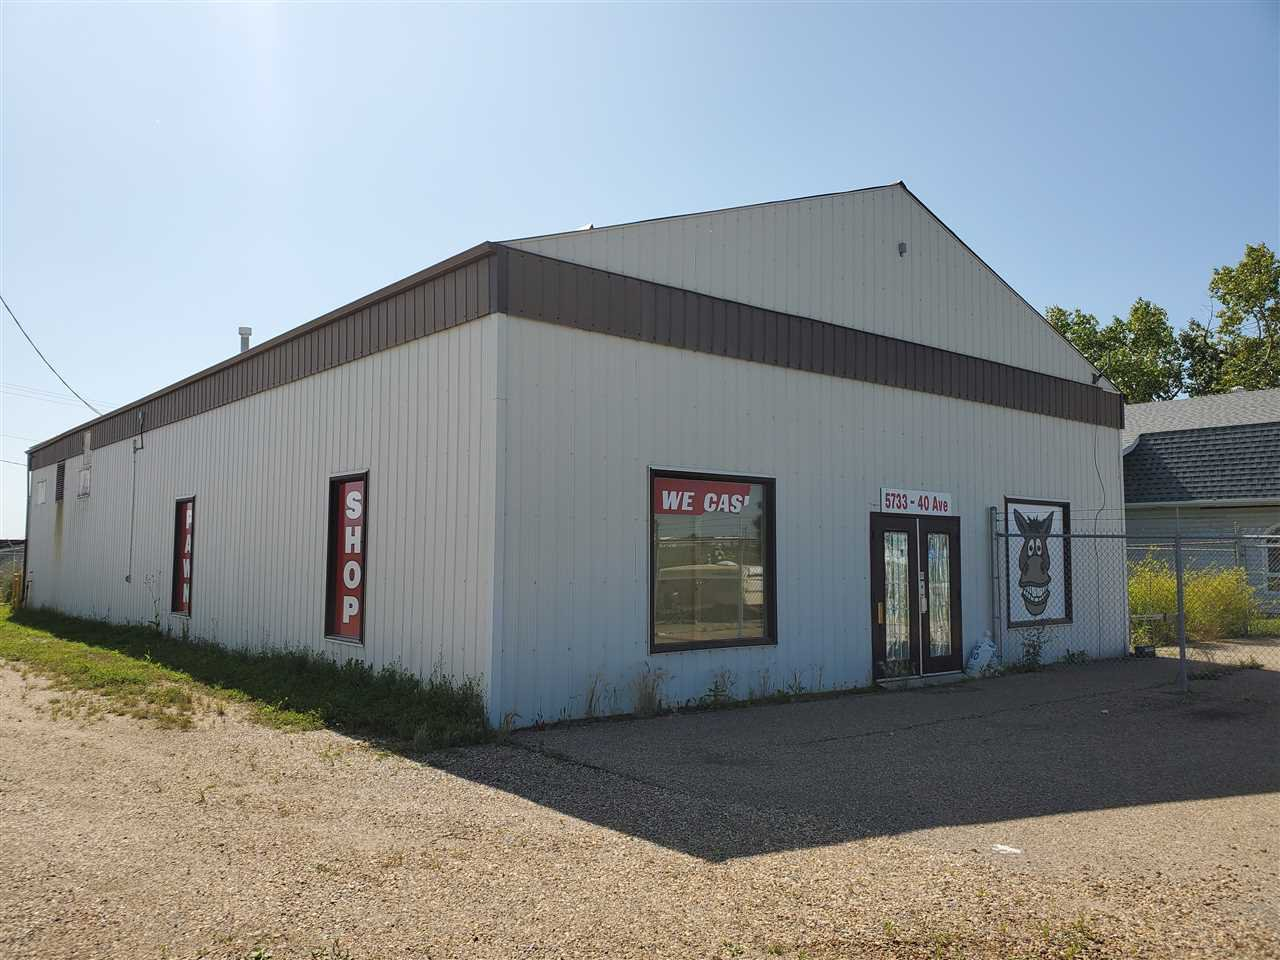 Main Photo: 5733 40 Avenue: Wetaskiwin Retail for sale : MLS®# E4170619